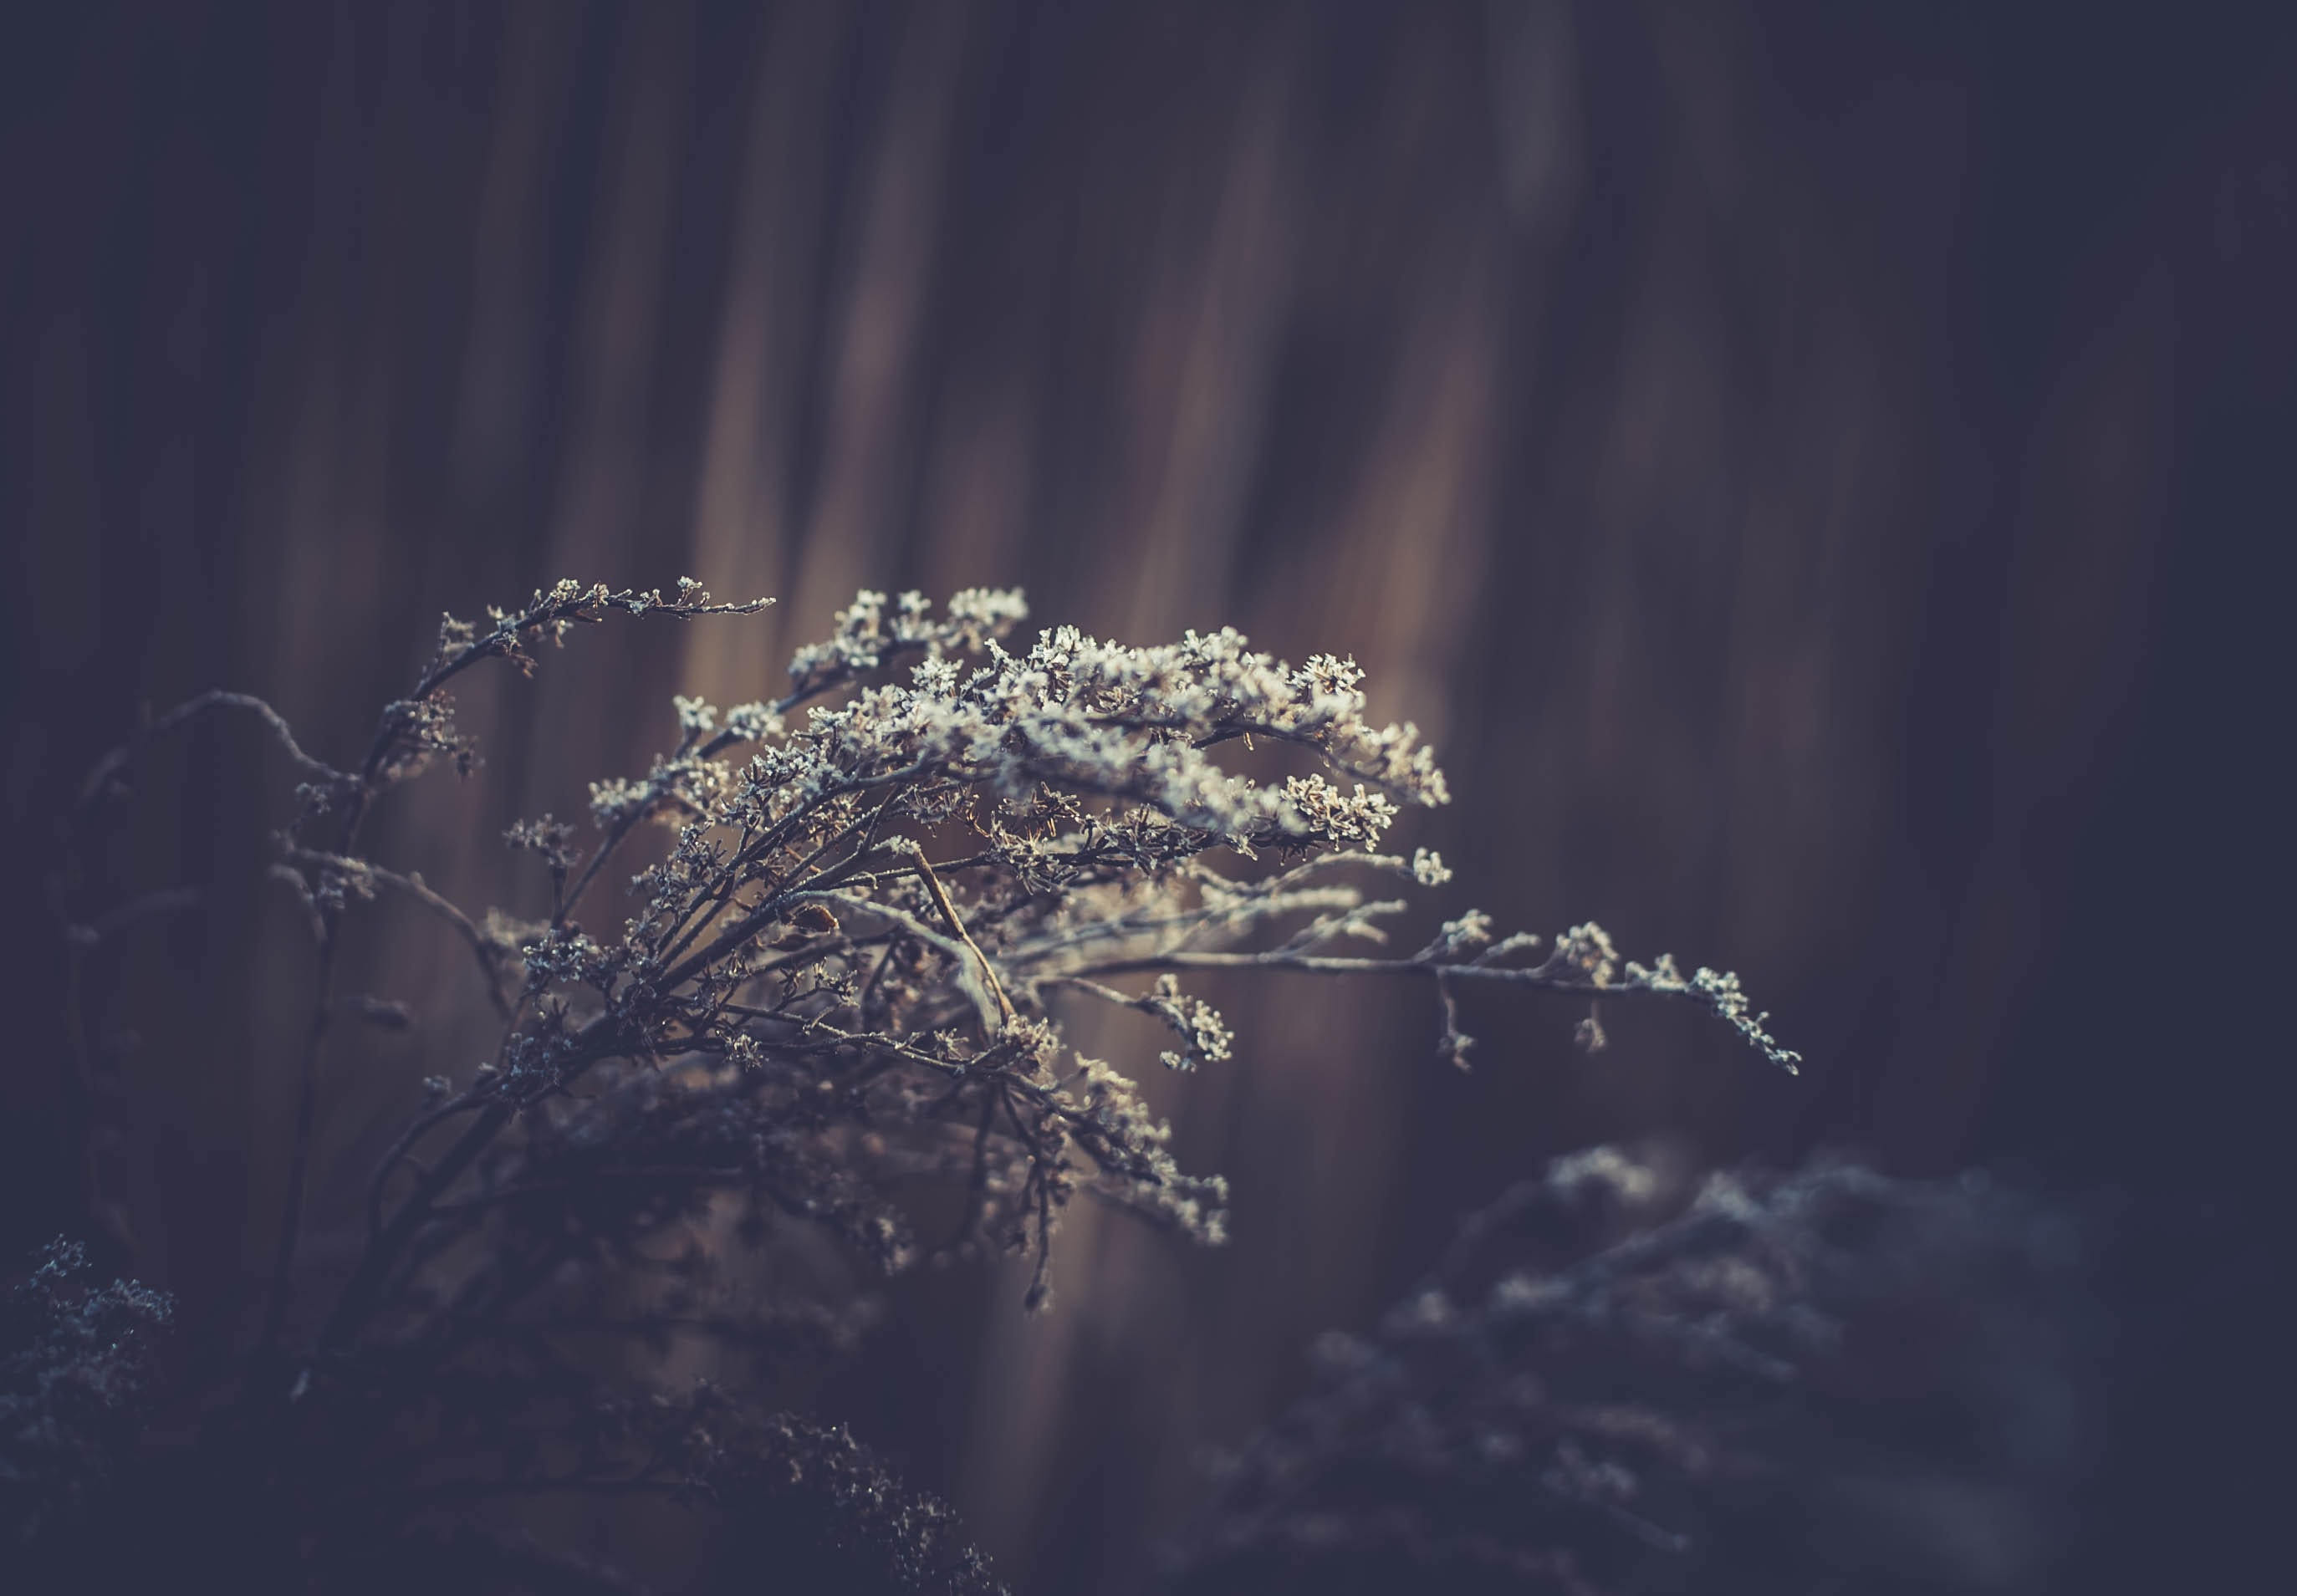 White-flowered branches of a shrub against a blurry dark background